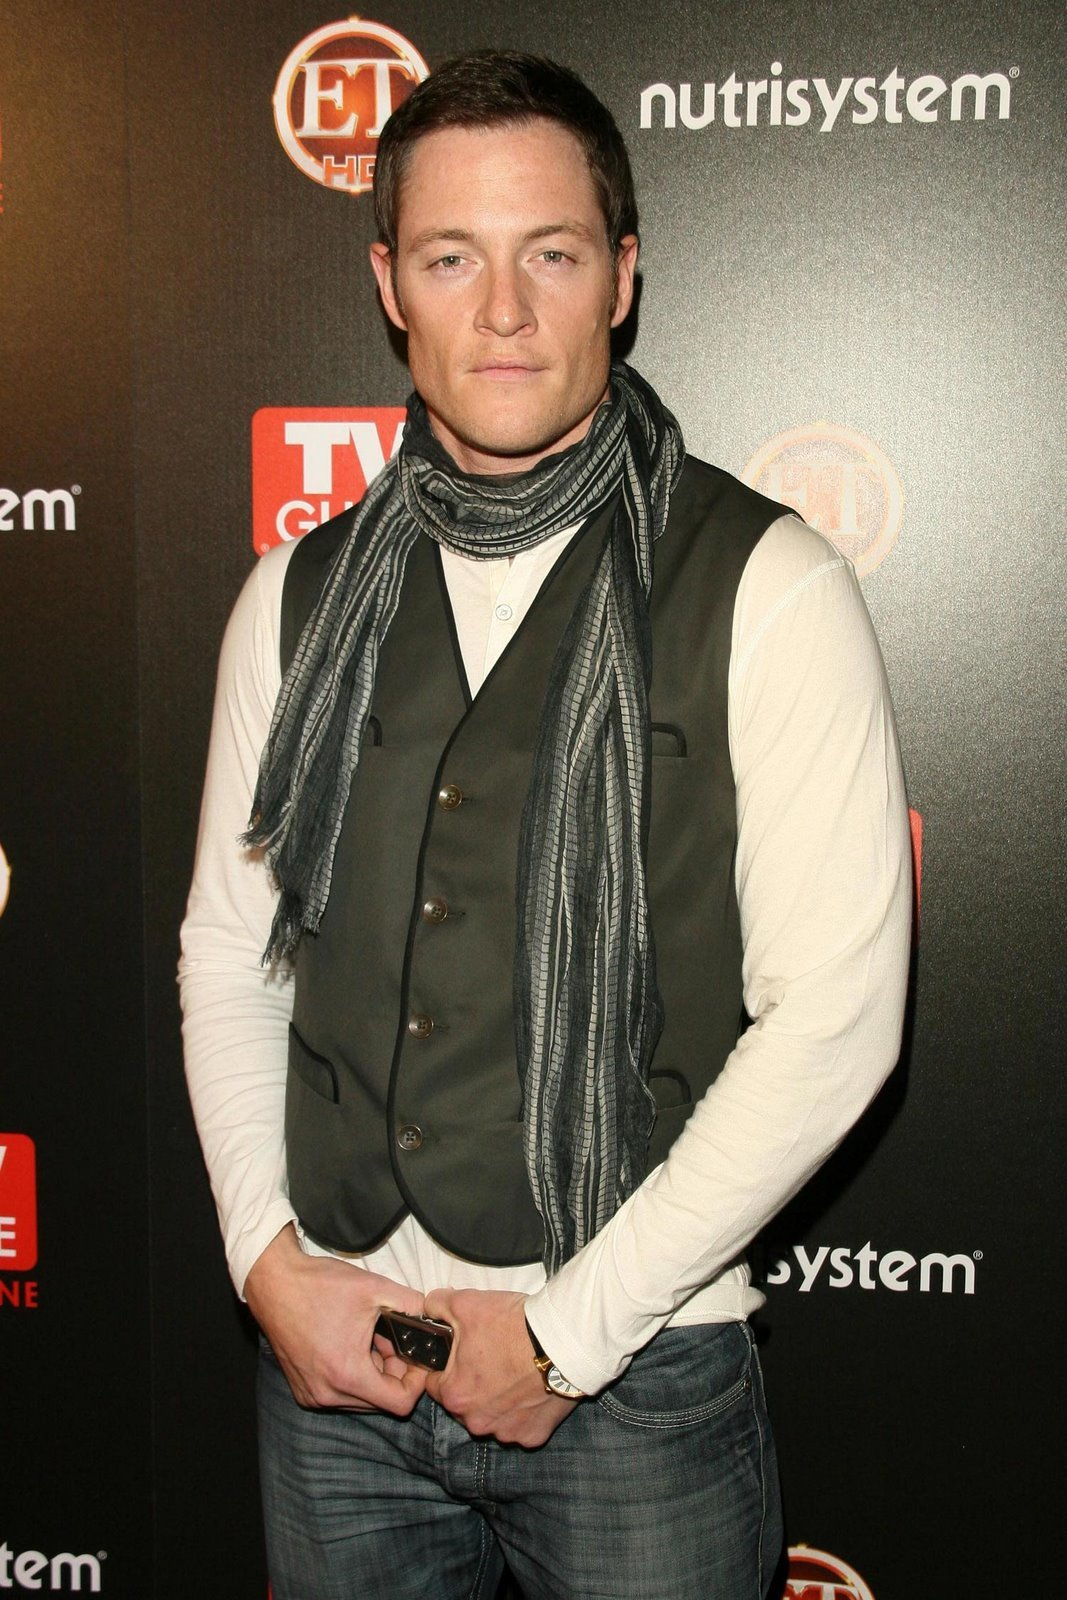 tahmoh penikett TV guide HD Wallpaper